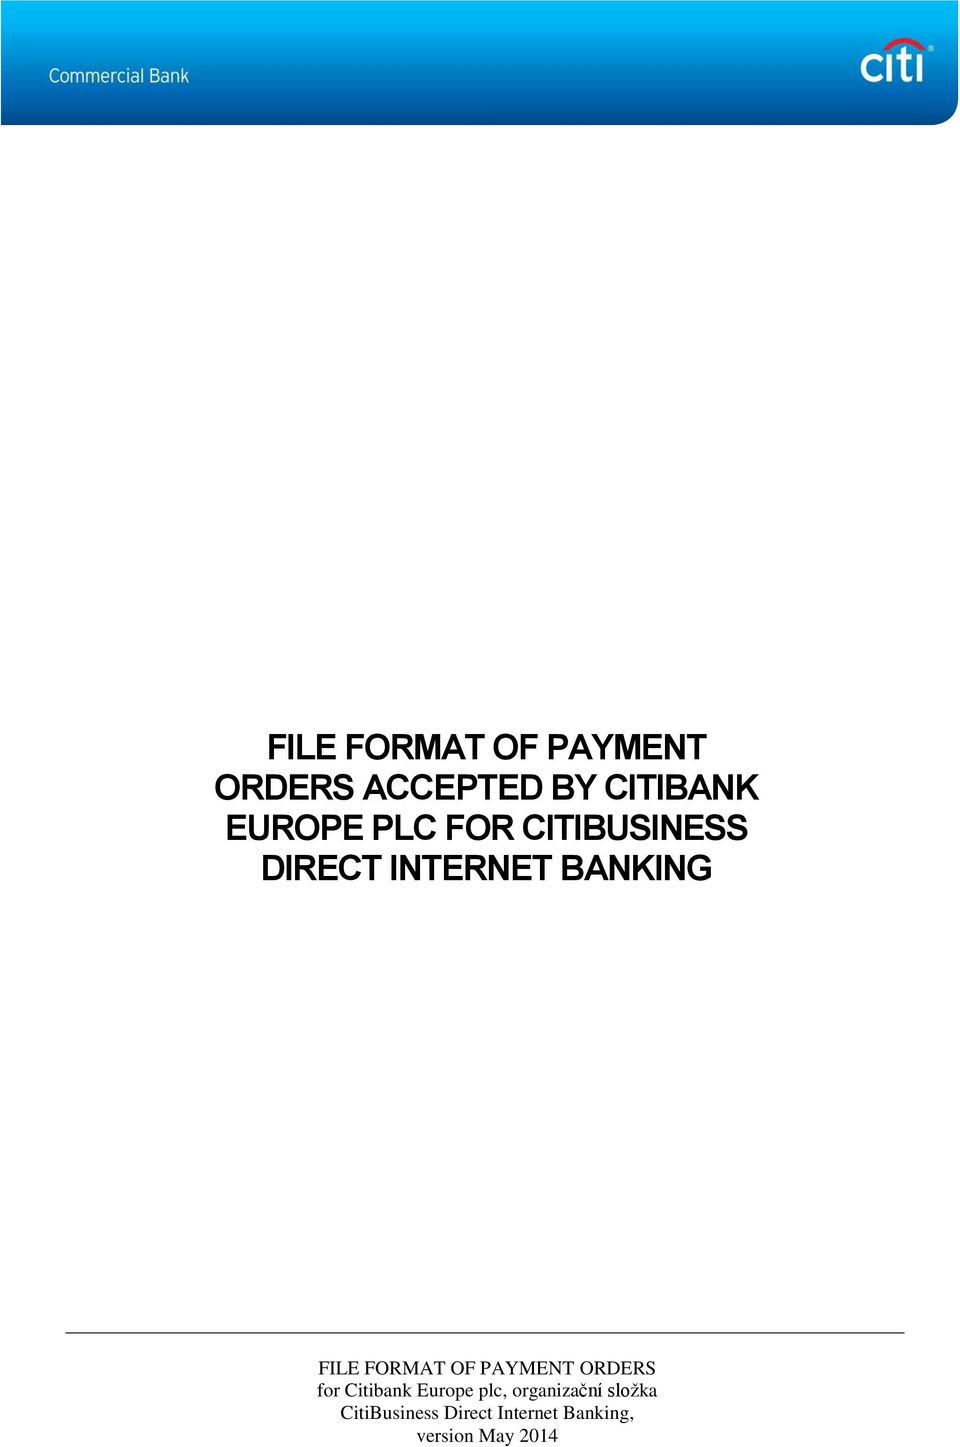 FILE FORMAT OF PAYMENT ORDERS ACCEPTED BY CITIBANK EUROPE